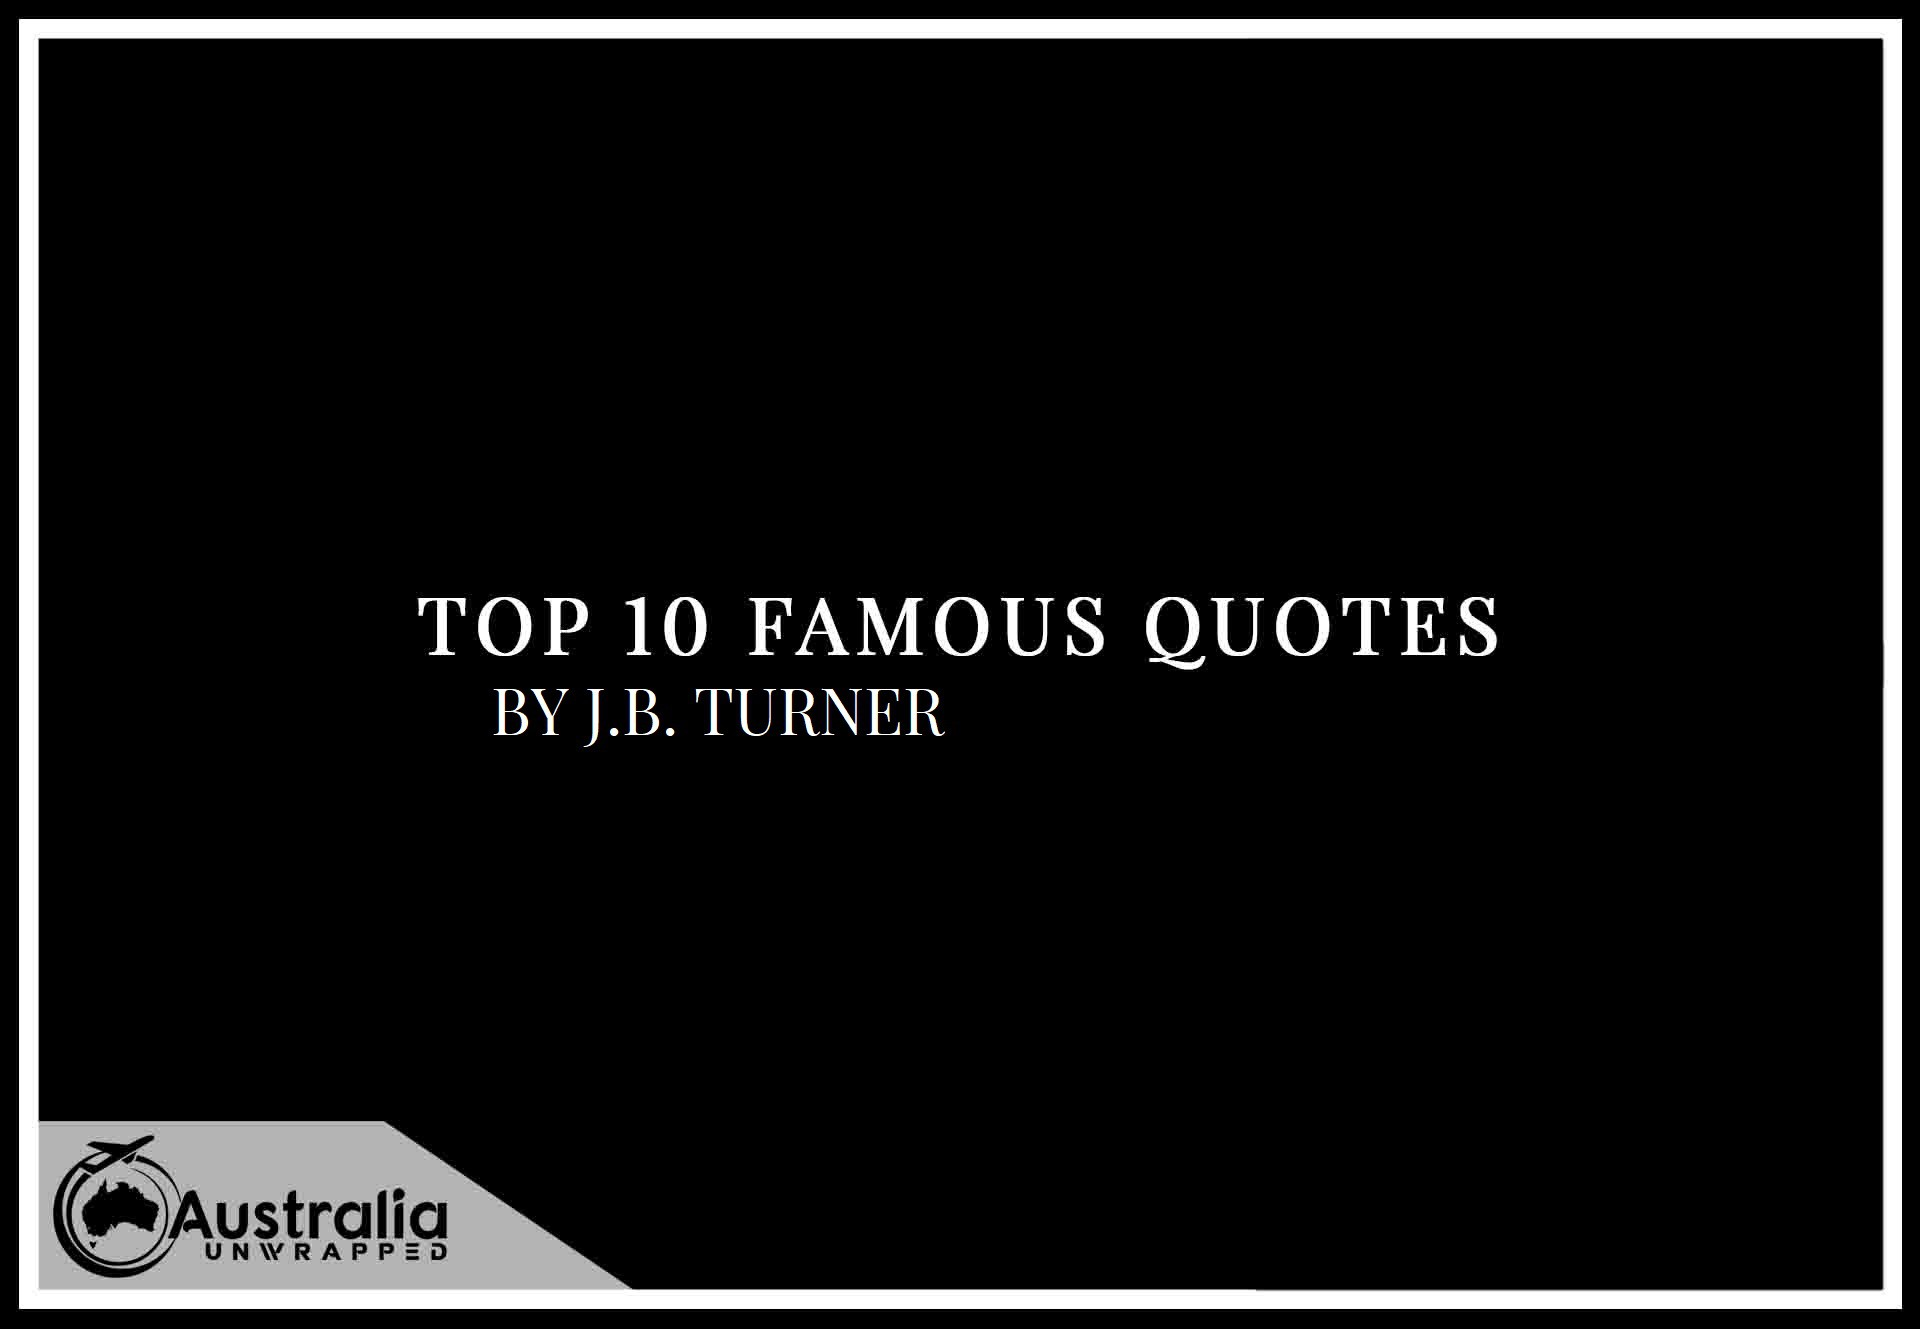 Top 10 Famous Quotes by Author J.B. Turner